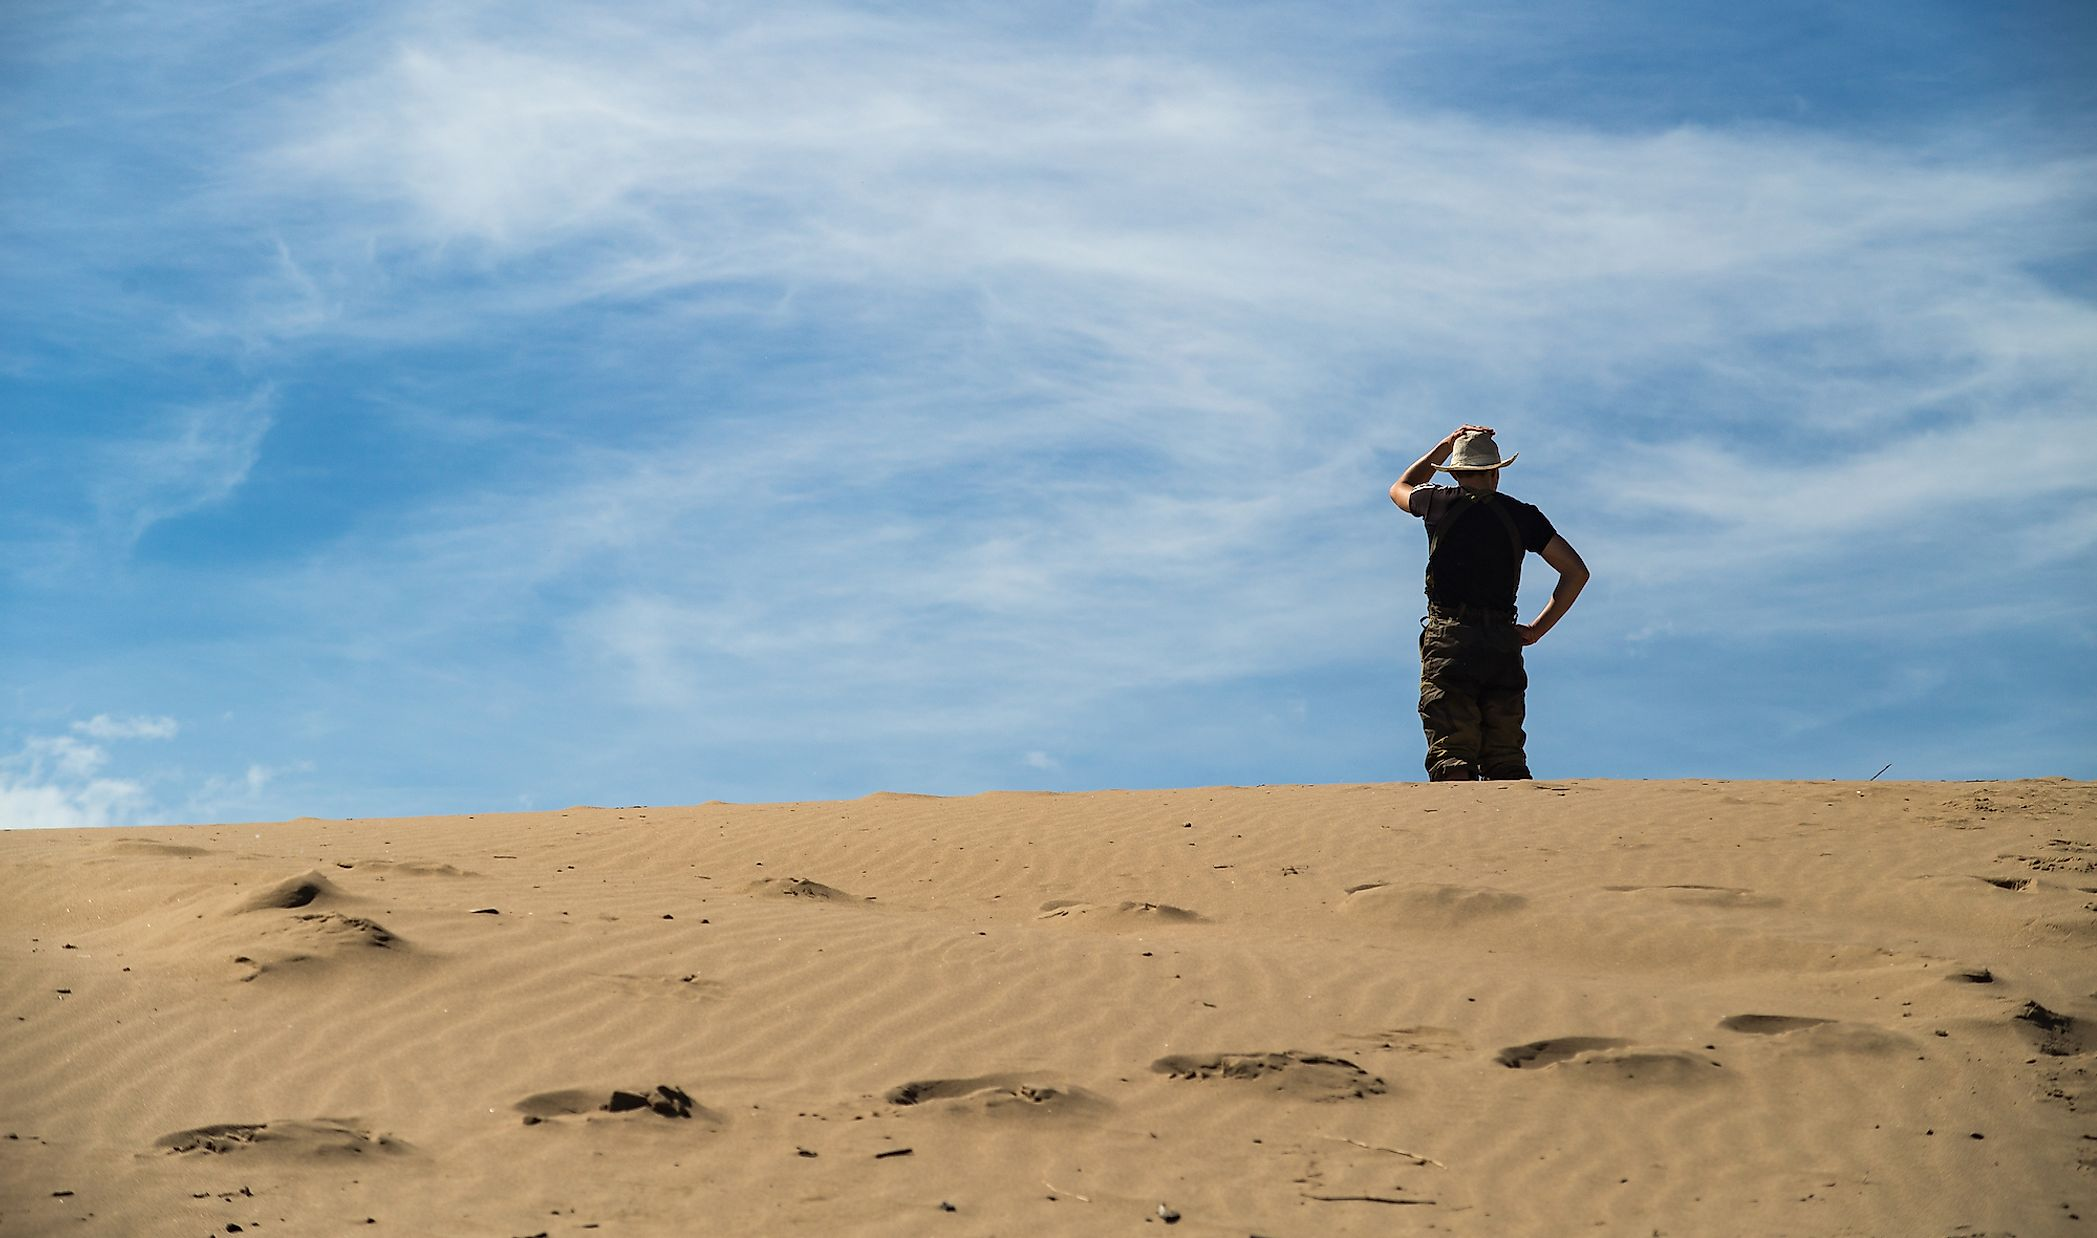 10 Ways To Survive Being Lost In A Desert